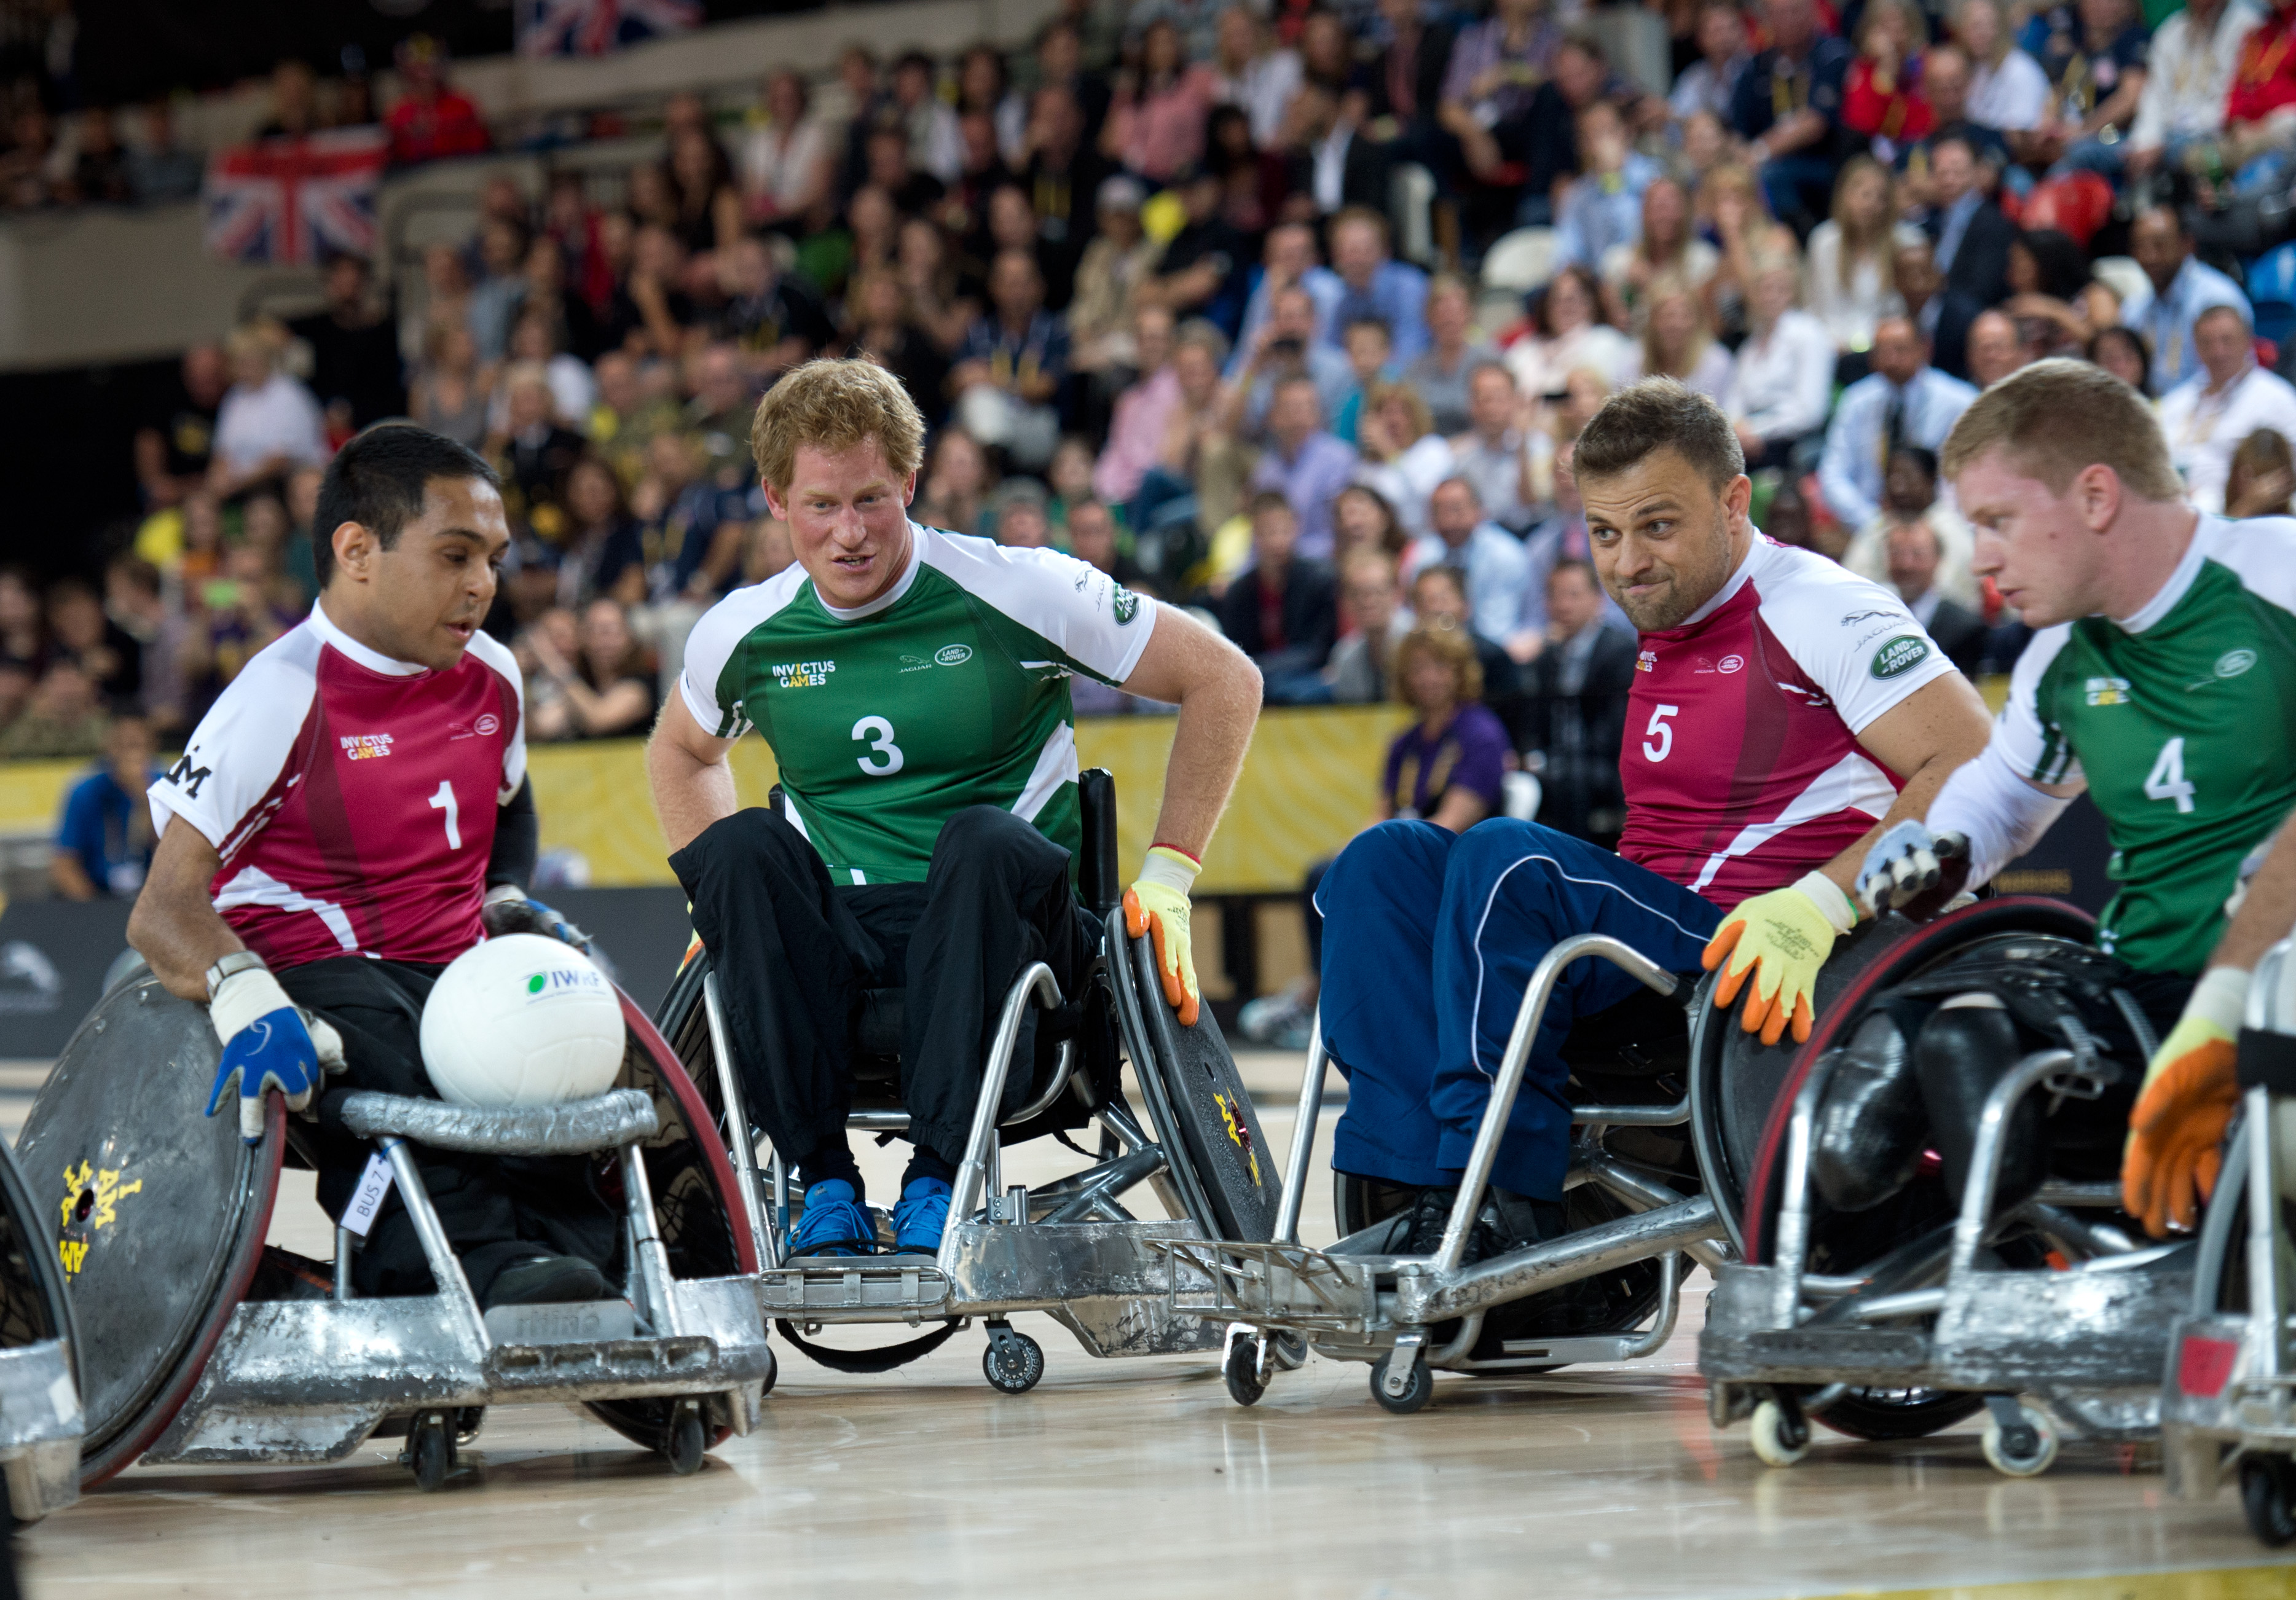 Prince Harry participates in a celebrity wheelchair rugby match on day 2 of the Invictus Games in London on Sept. 12, 2014.